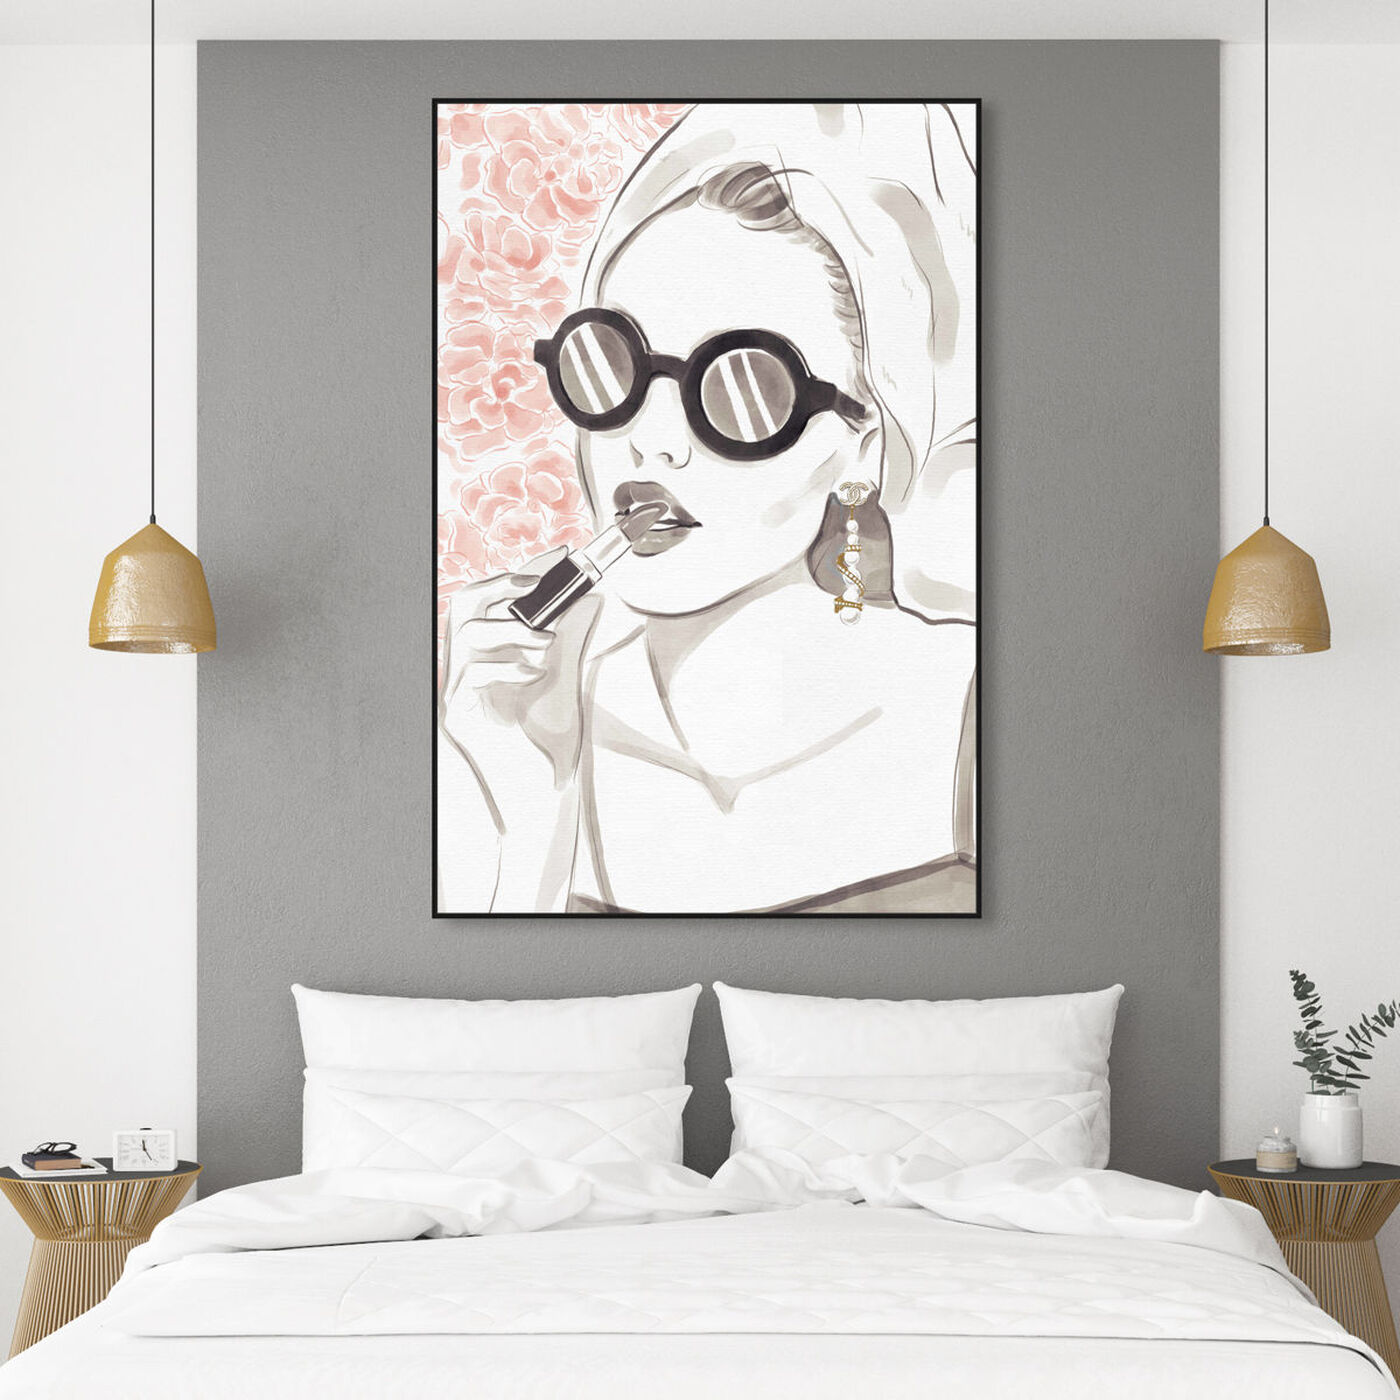 Hanging view of Sunglasses Bomb Beauty featuring fashion and glam and portraits art.